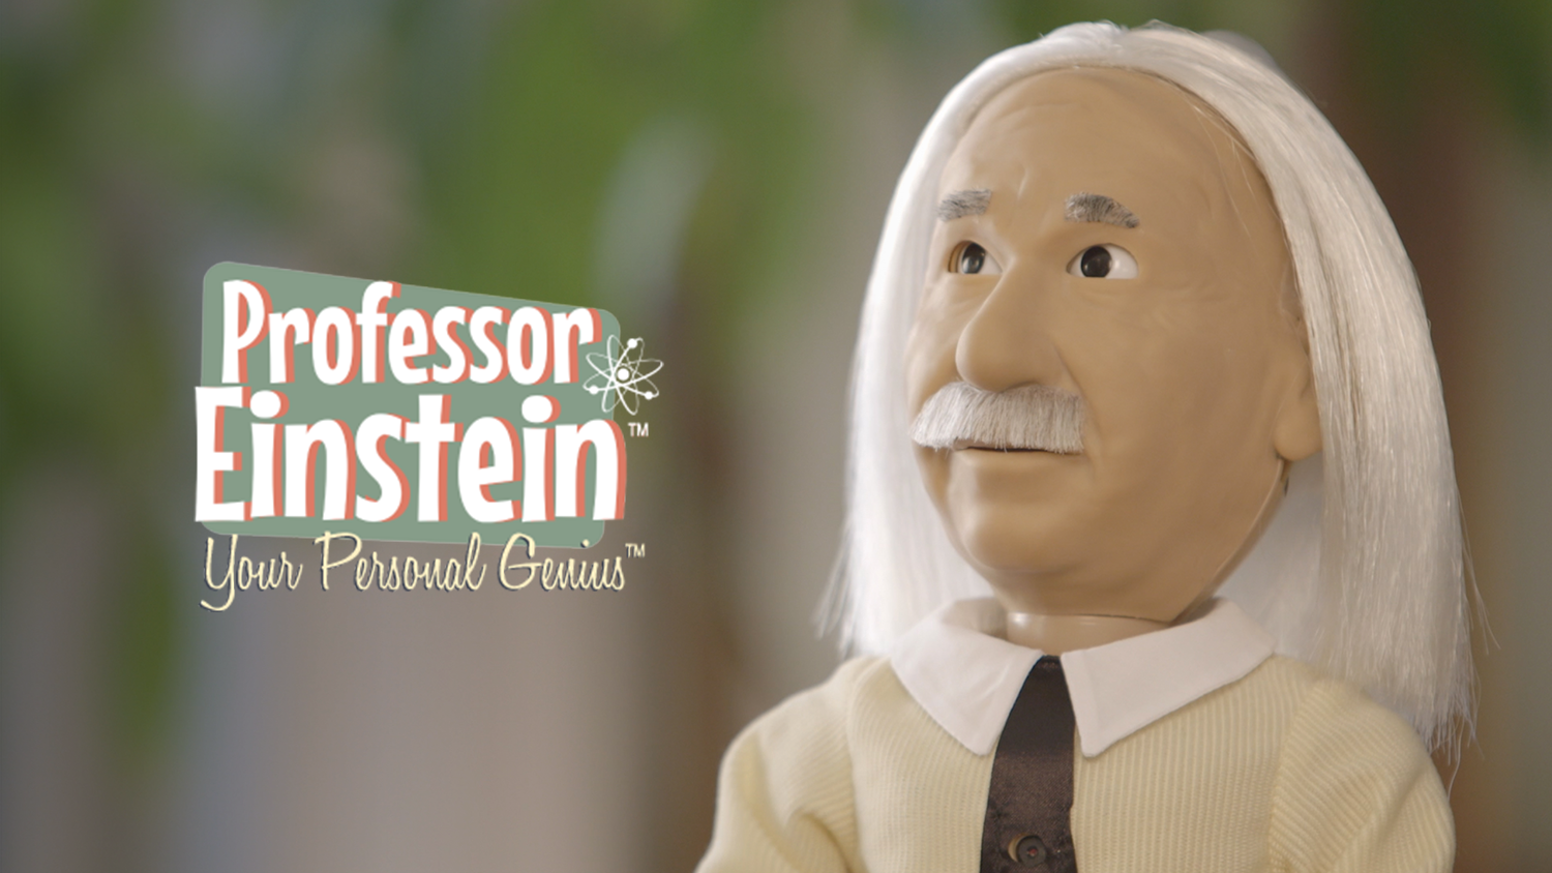 Learn science and play brain-teasing games with the world's first walking, talking, and amazingly expressive Einstein robot